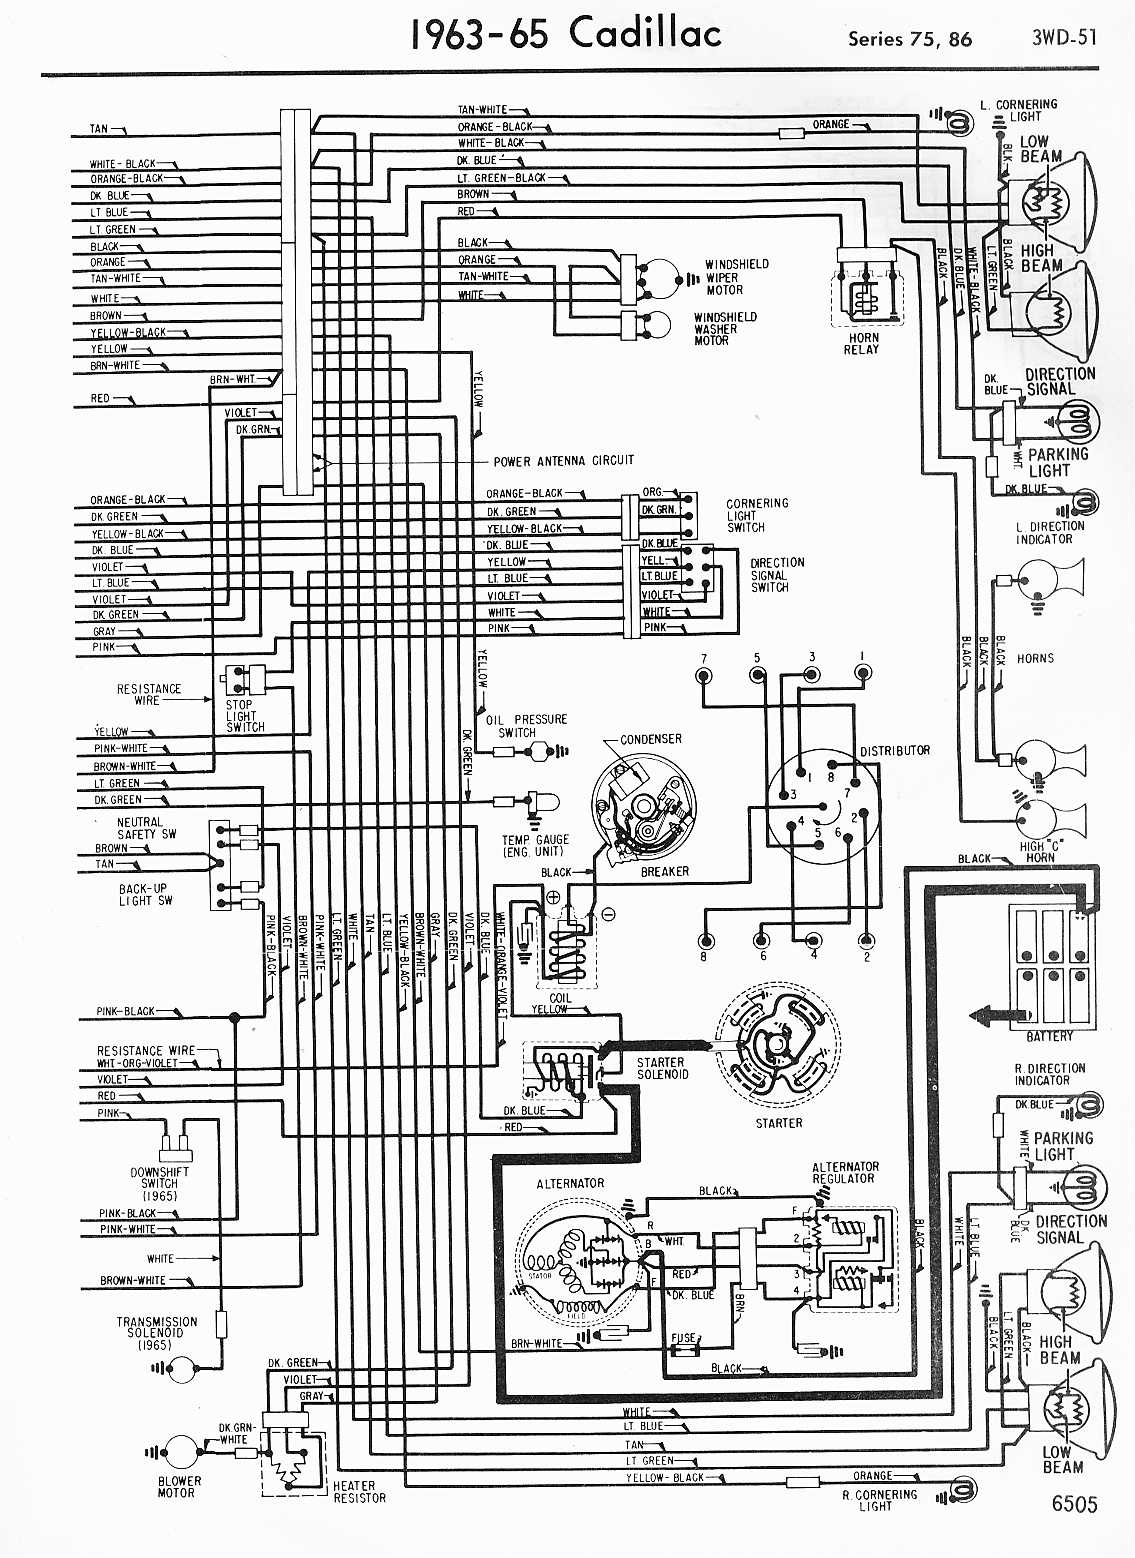 1965 Series 75 right · more Buick ads · Buick wiring diagrams Cadillac ...